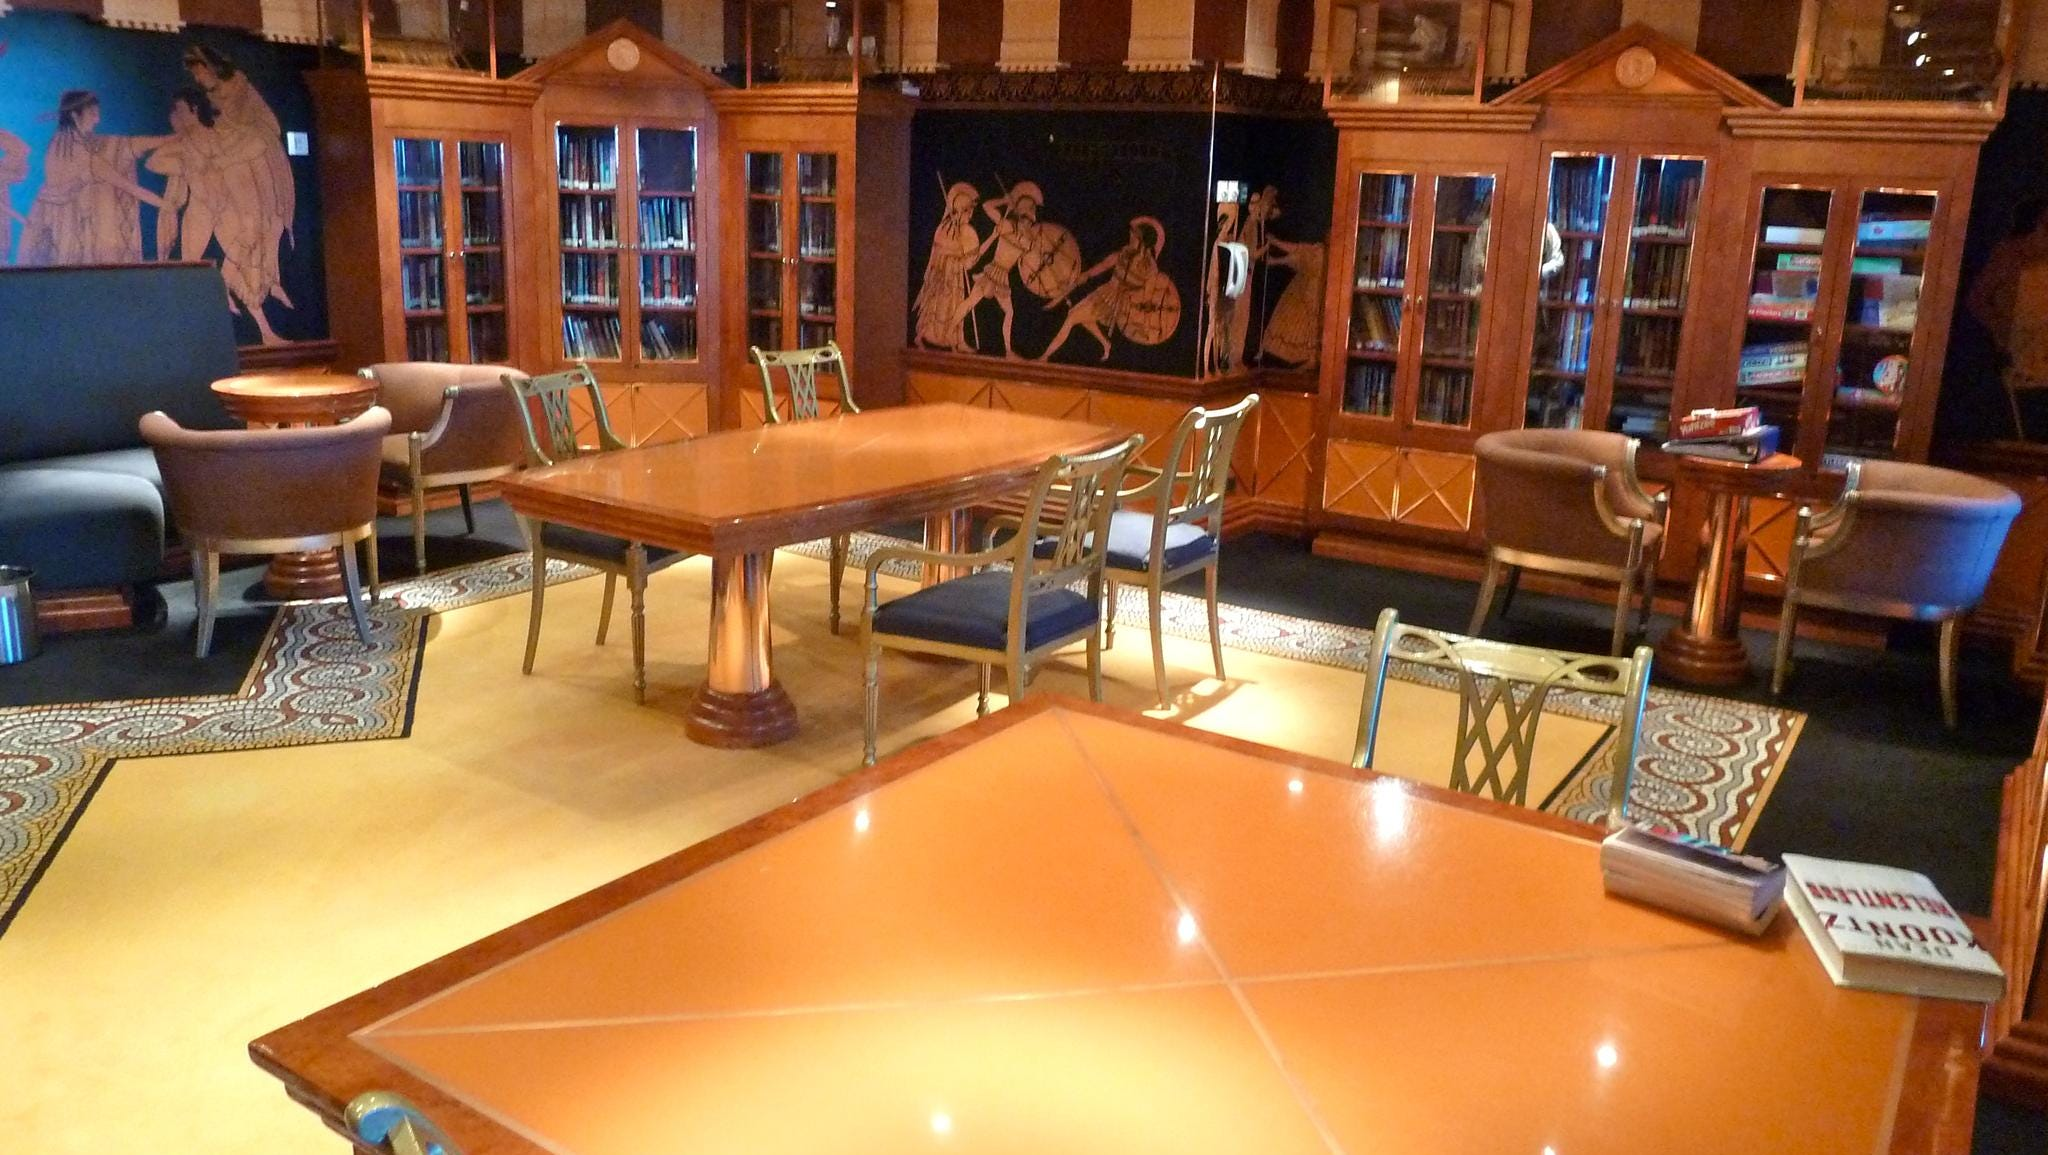 The 17-seat Iliad Library is adjacent to the Atrium America on Deck 4. Highlights include mosaic floors and artwork simulating scenes depicted on ancient Greek pottery shards.